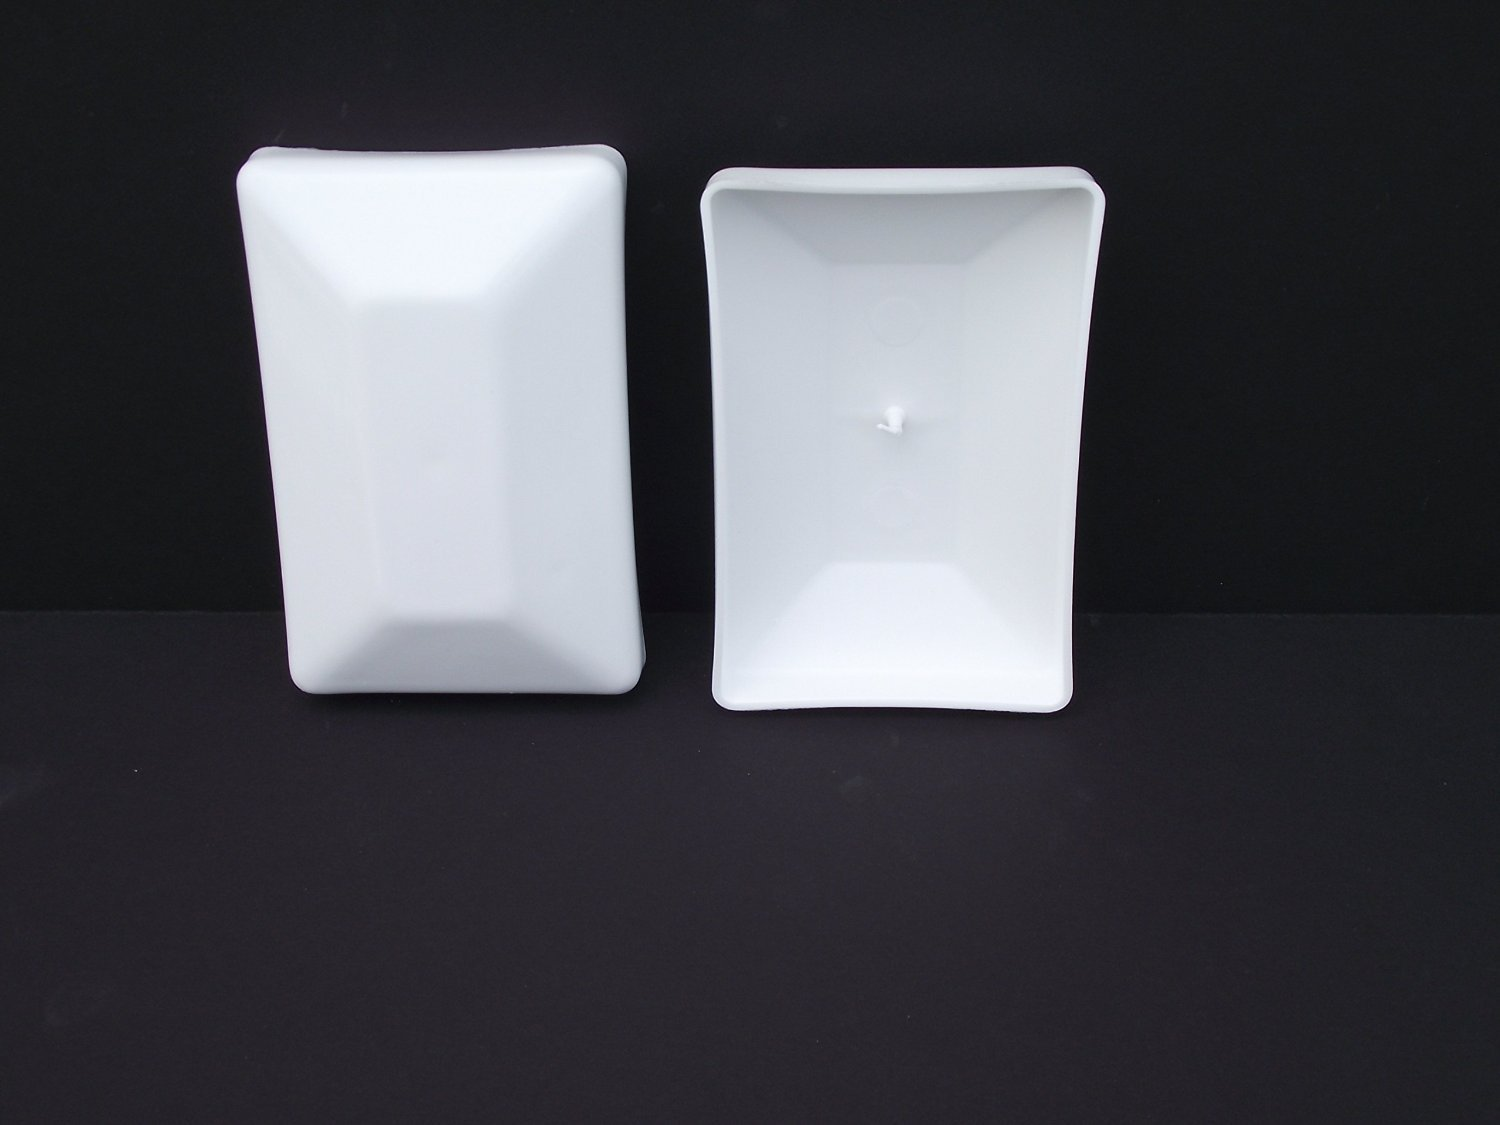 125 PACK-White Fence Post Plastic Caps 4x6 (3 5/8'' X 5 5/8'') Decorative Fence toppers for 4 x 6 post